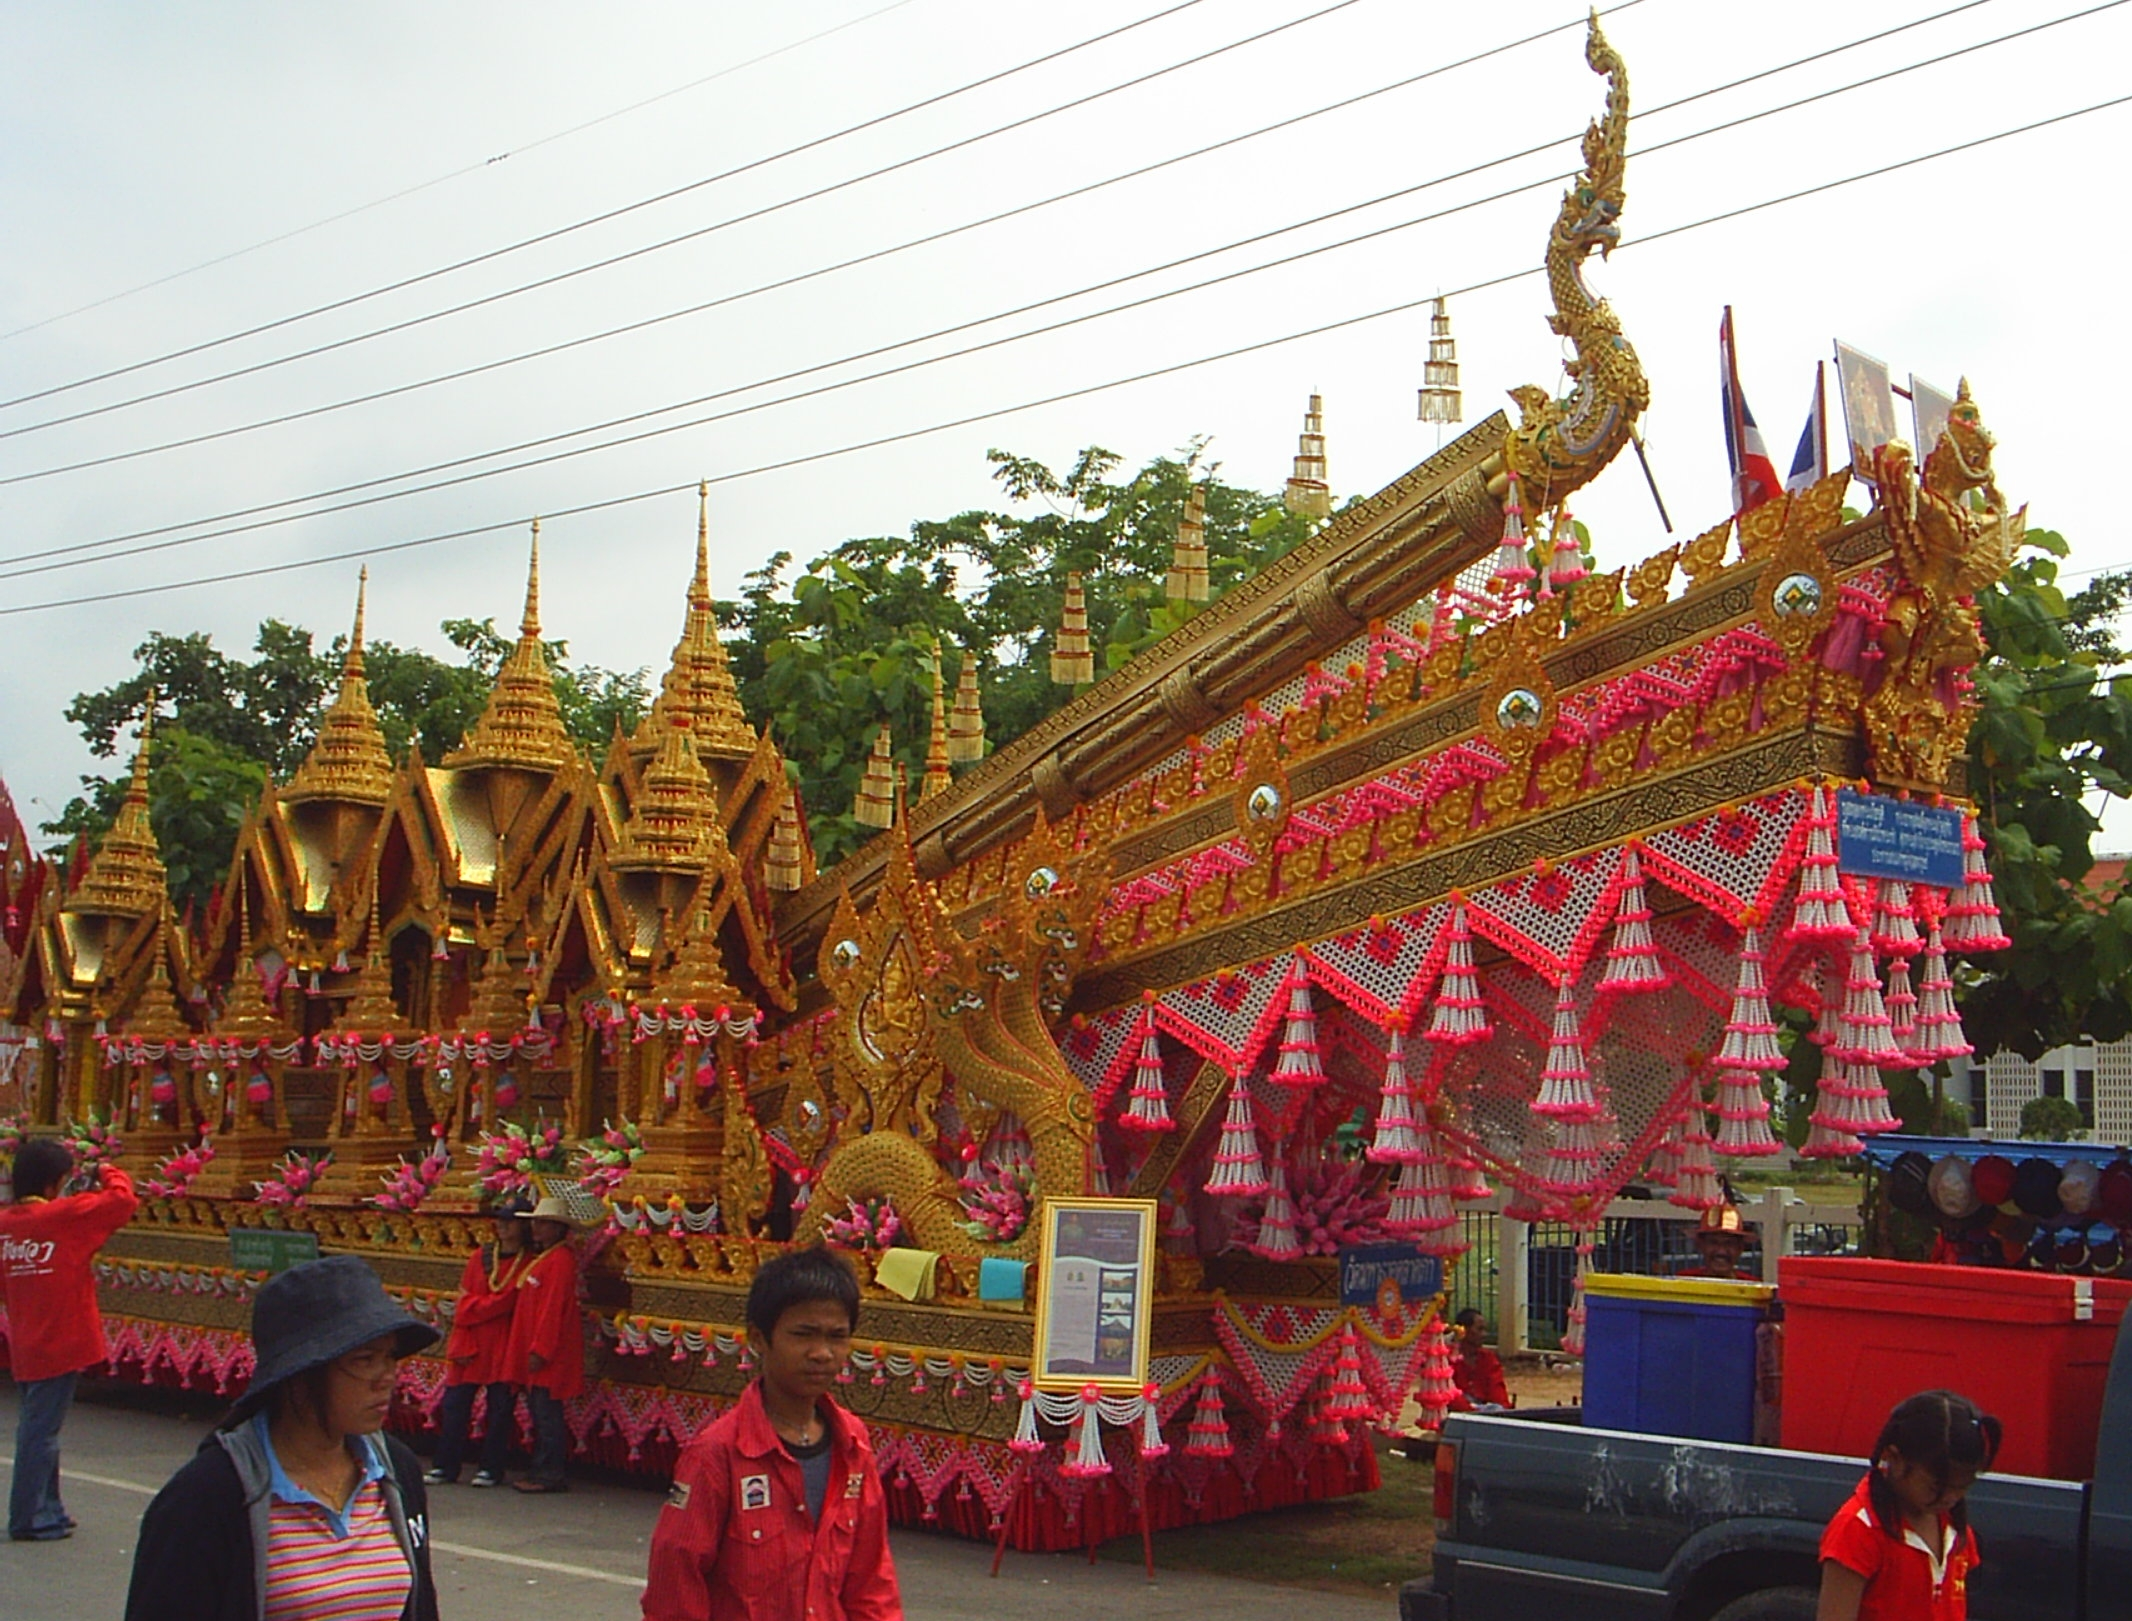 Rocket on a float in Yasothon, Thailand, prior to the Hae Bangfai Ko procession. Photo taken on May 16, 2005.